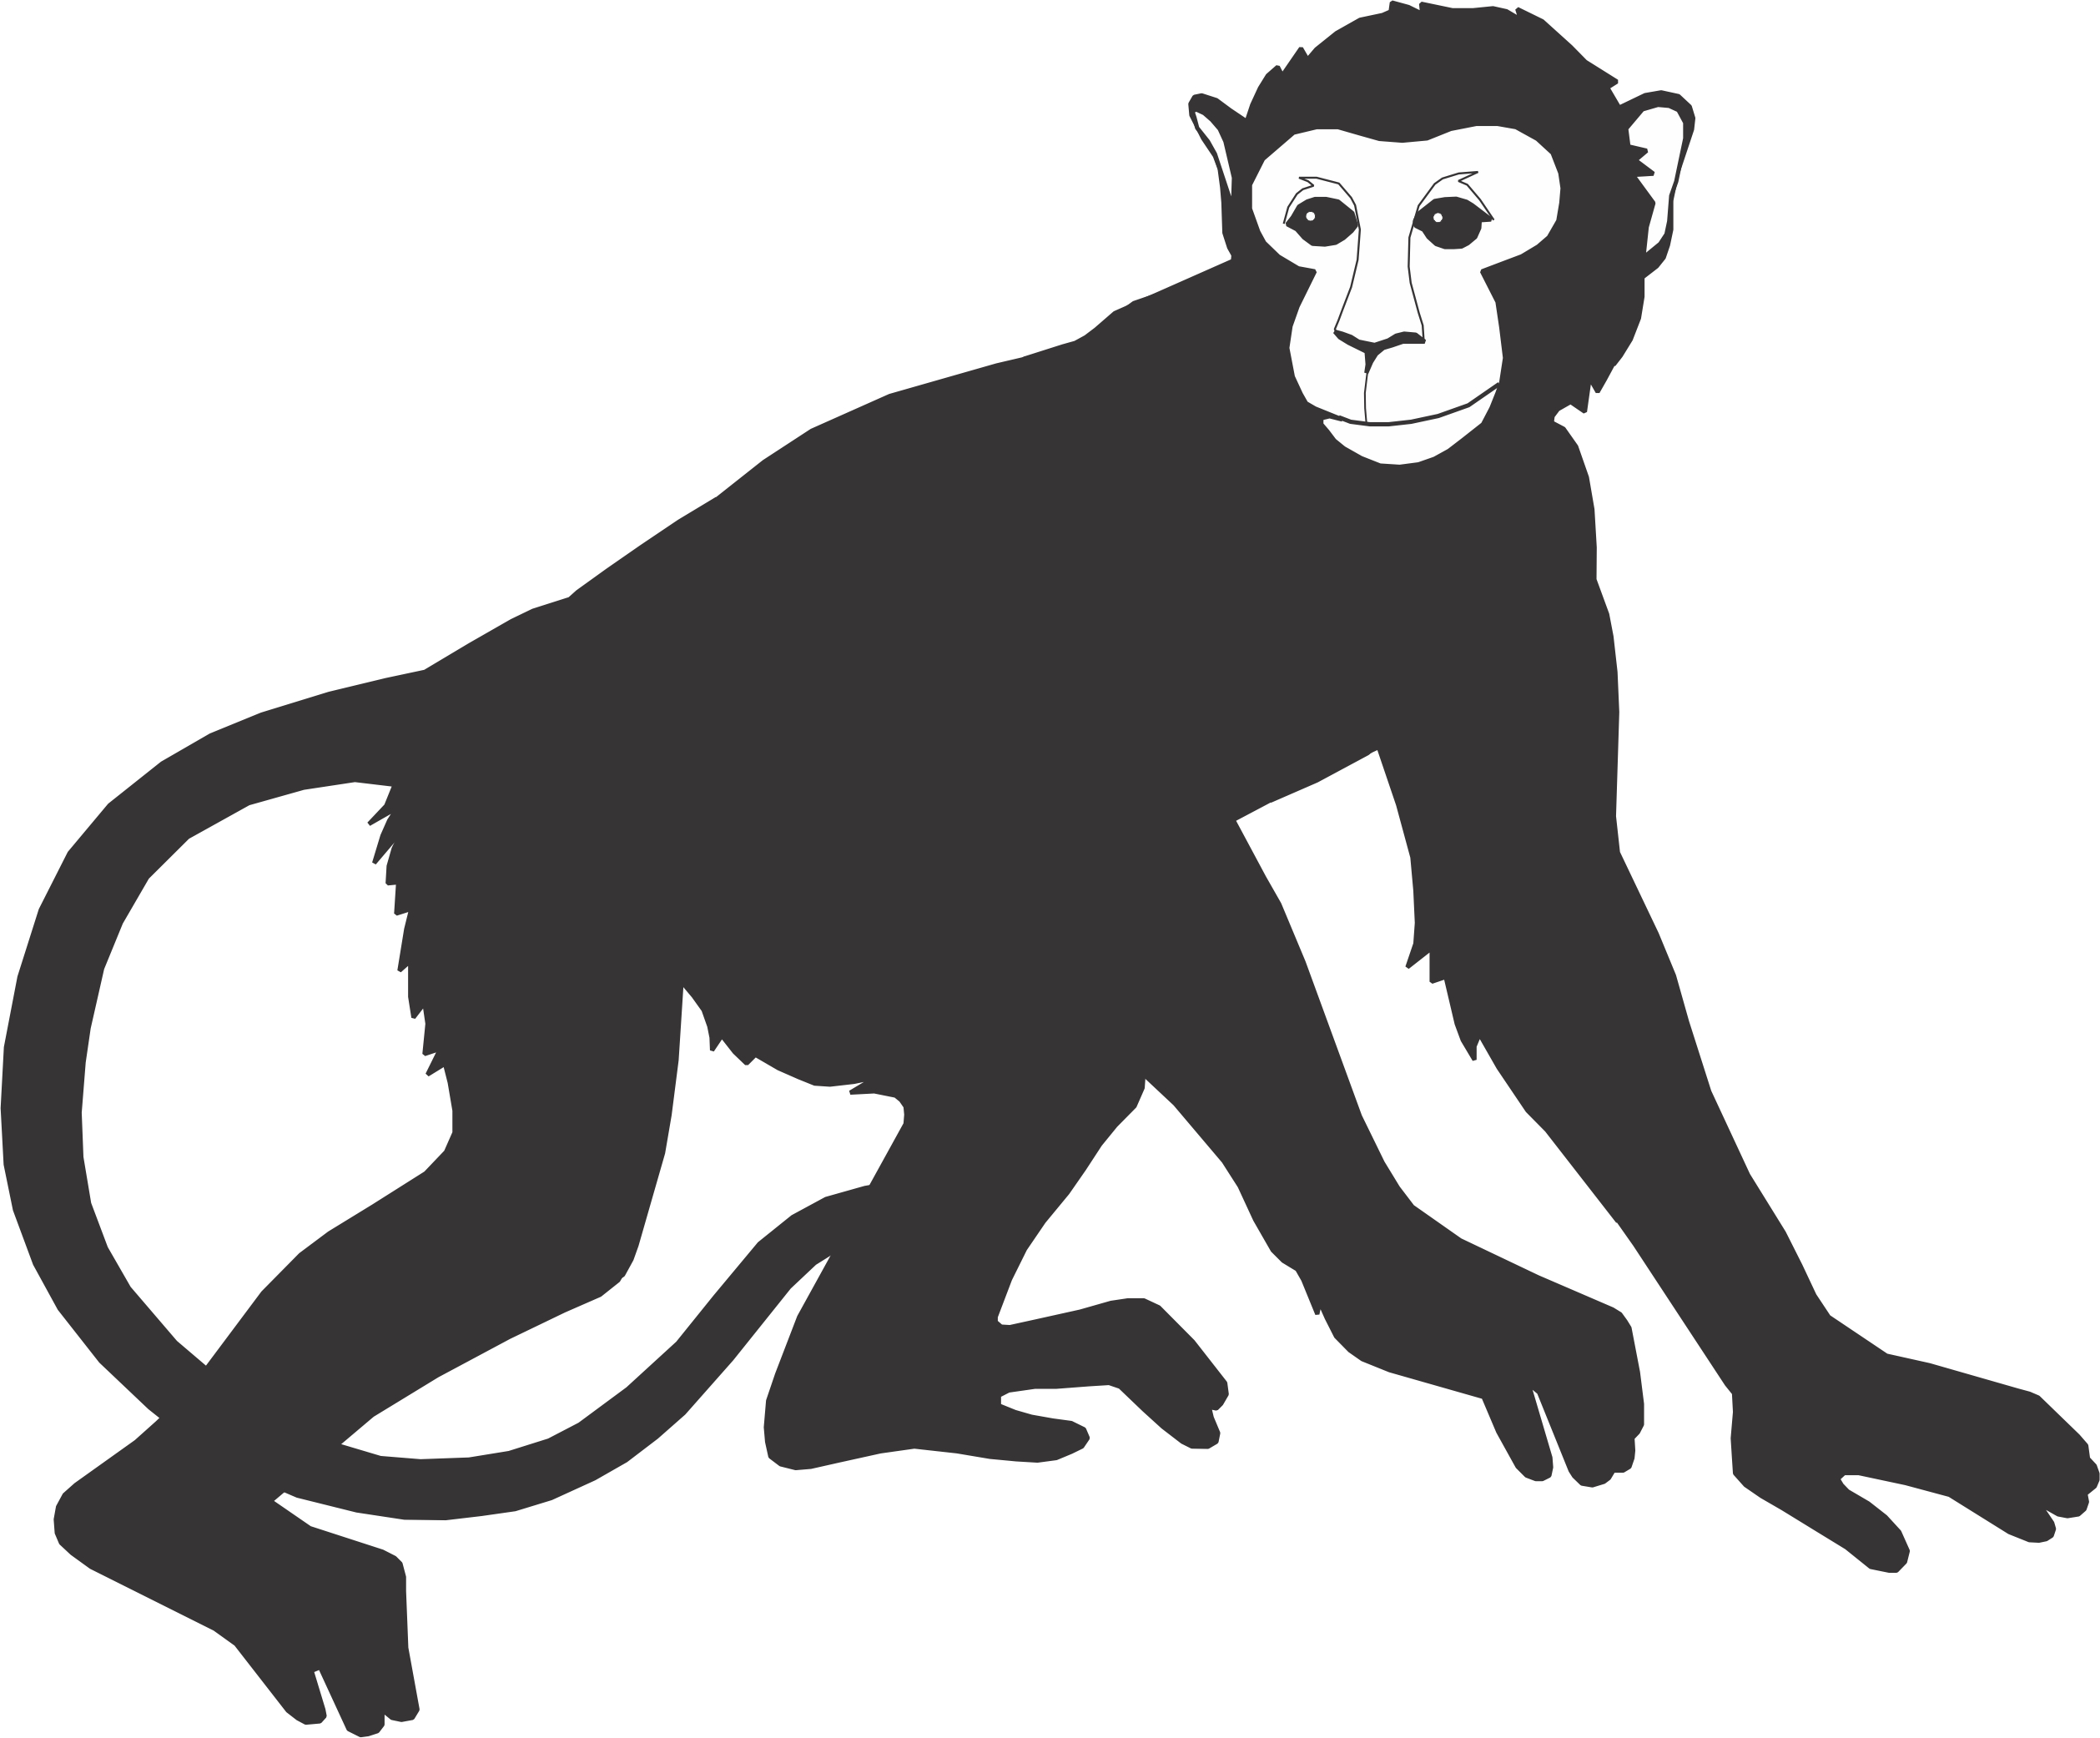 picture transparent Ape clipart monky. Free monkey silhouette download